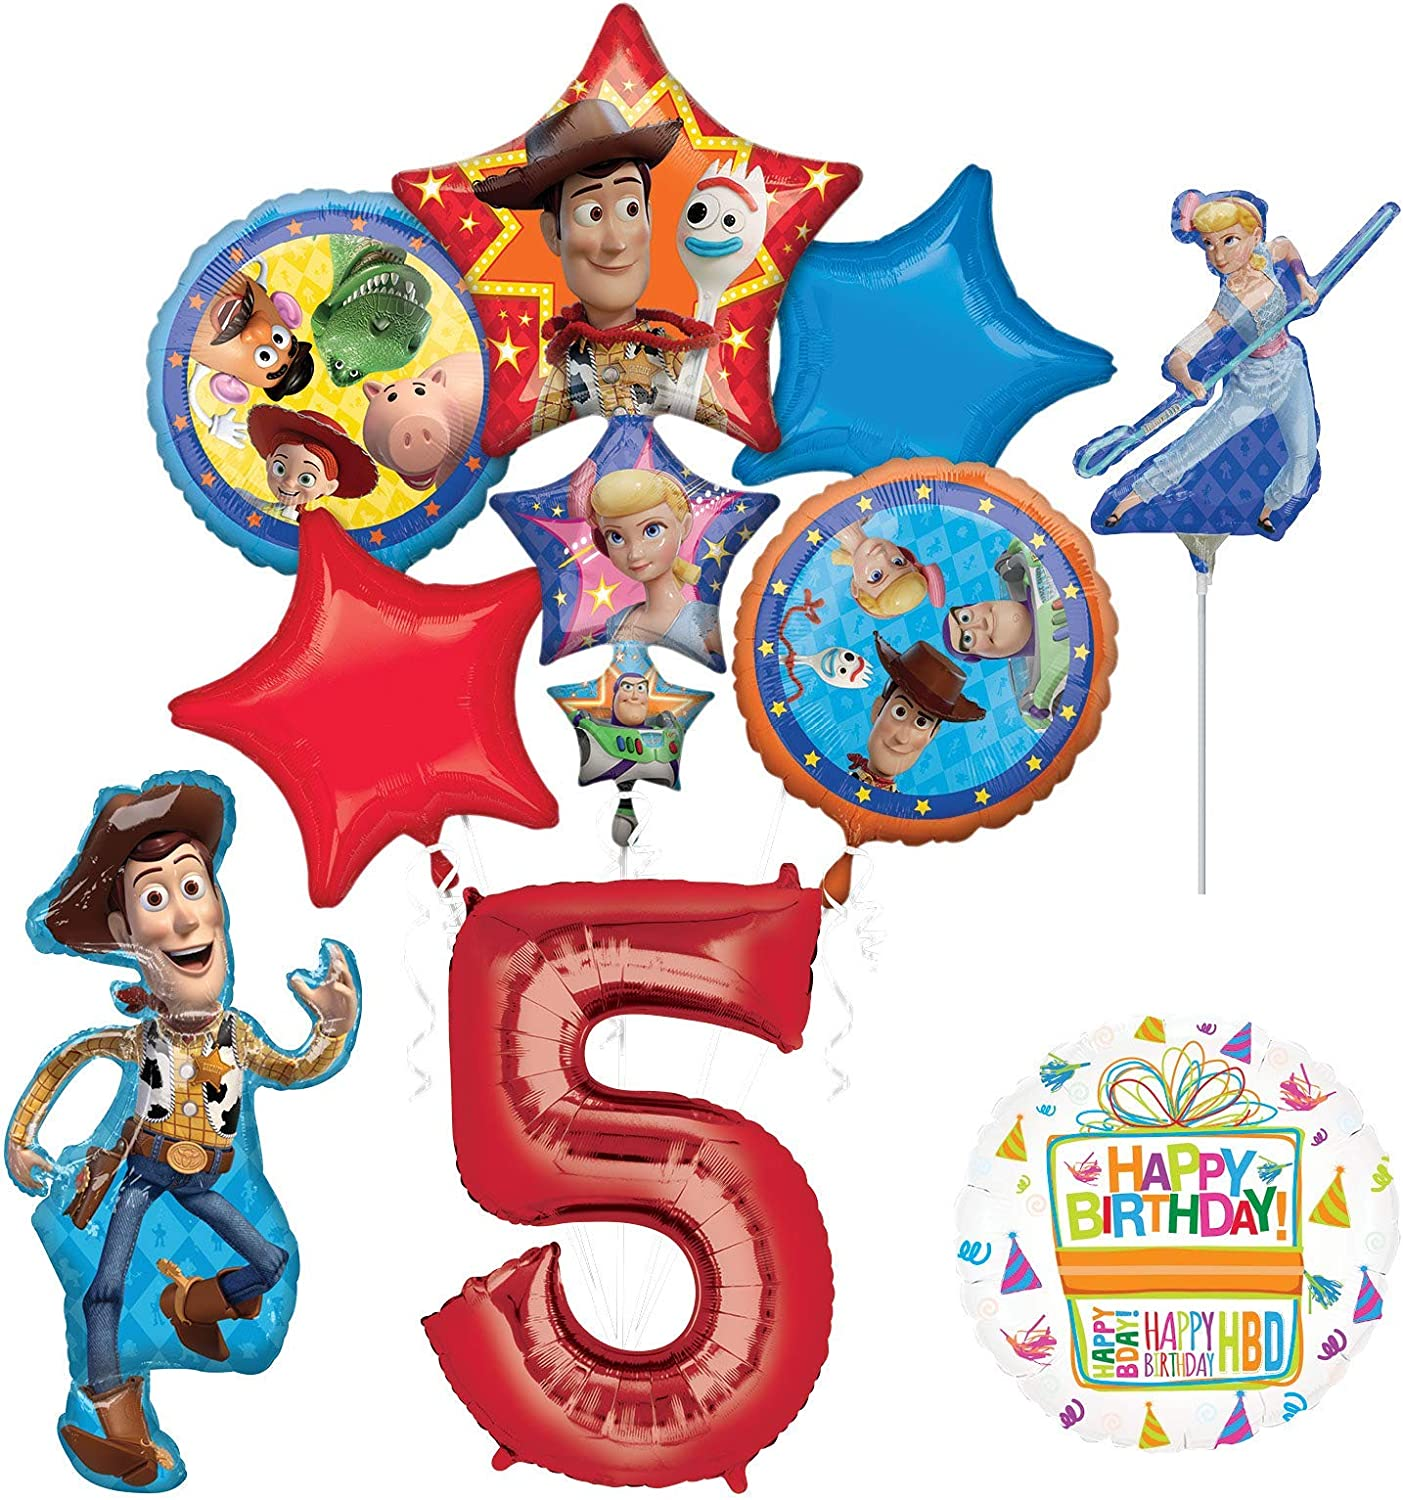 Mayflower Products Toy Story Party Supplies Woody Buzz Lightyear and Friends 6th Birthday Balloon Bouquet Decorations